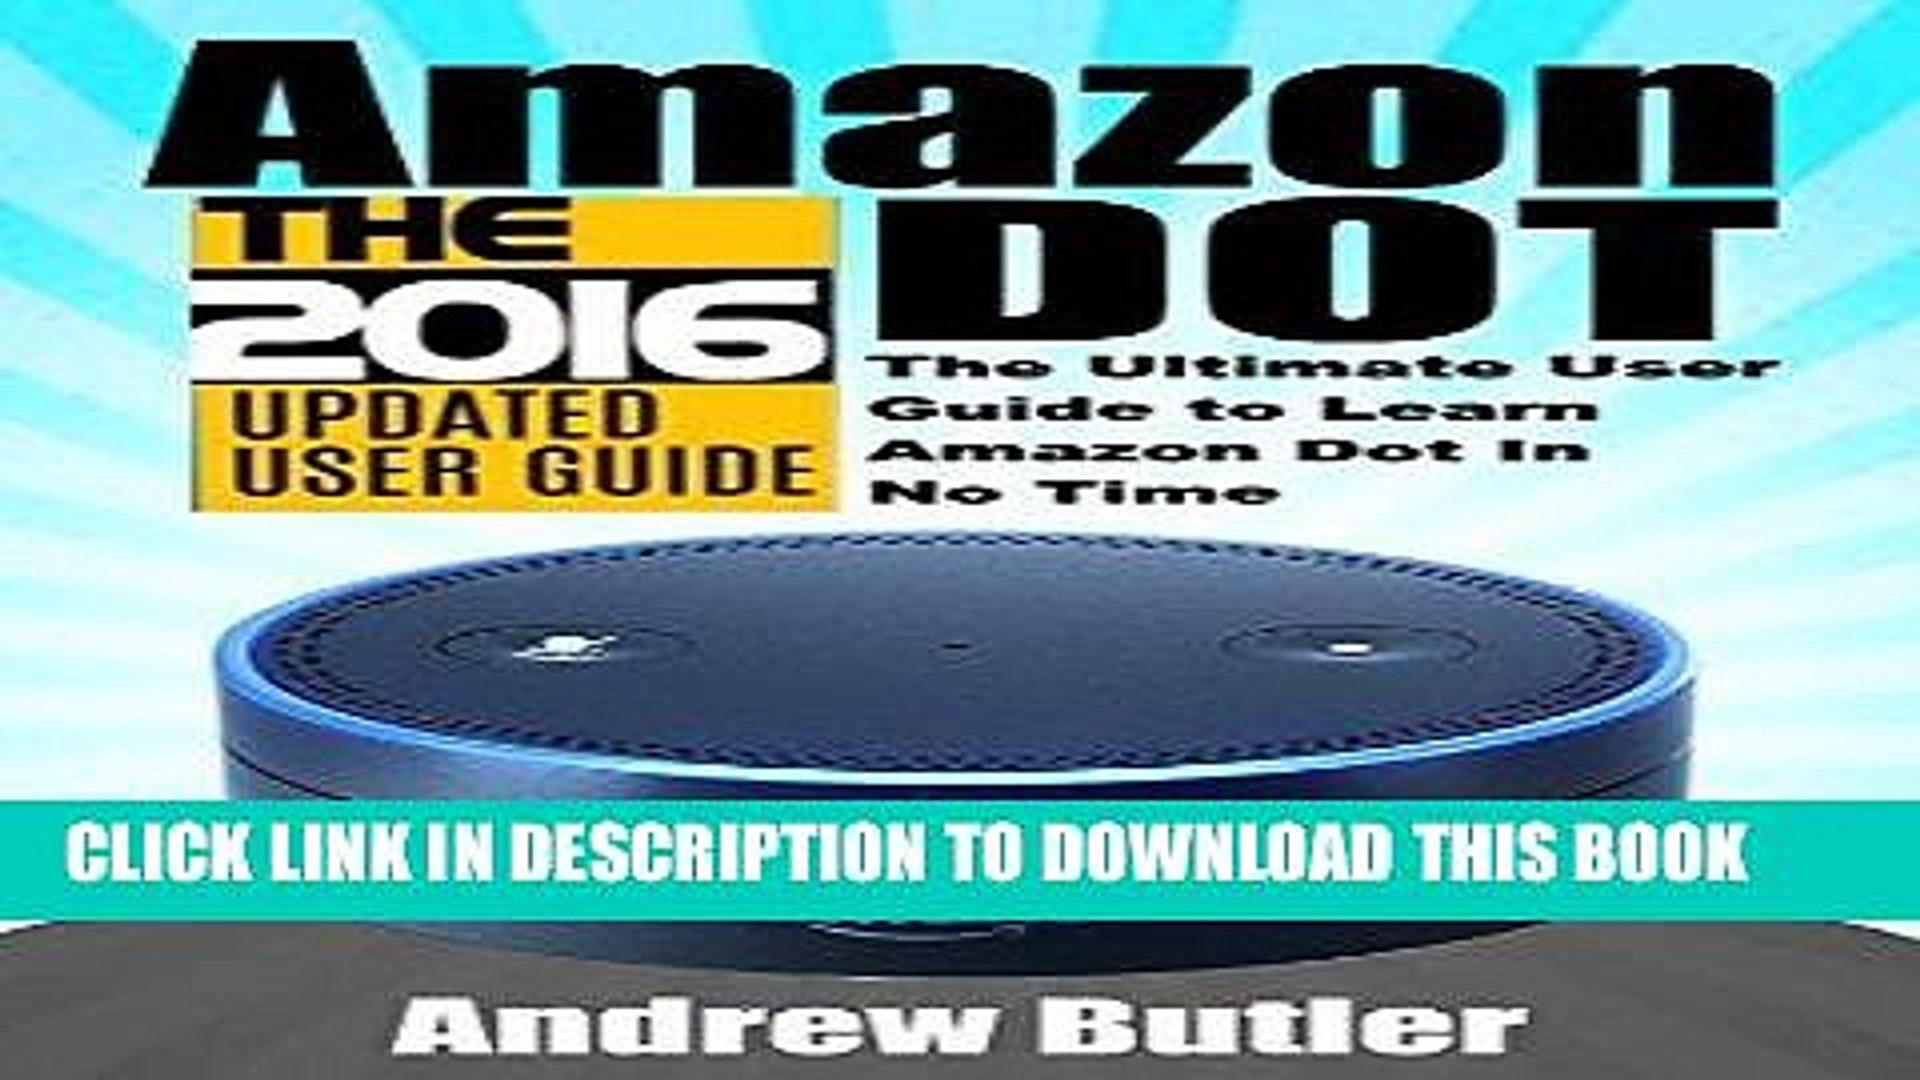 Read Now Amazon Echo: Dot: The Ultimate User Guide to Learn Amazon Dot In No Time (Amazon Echo